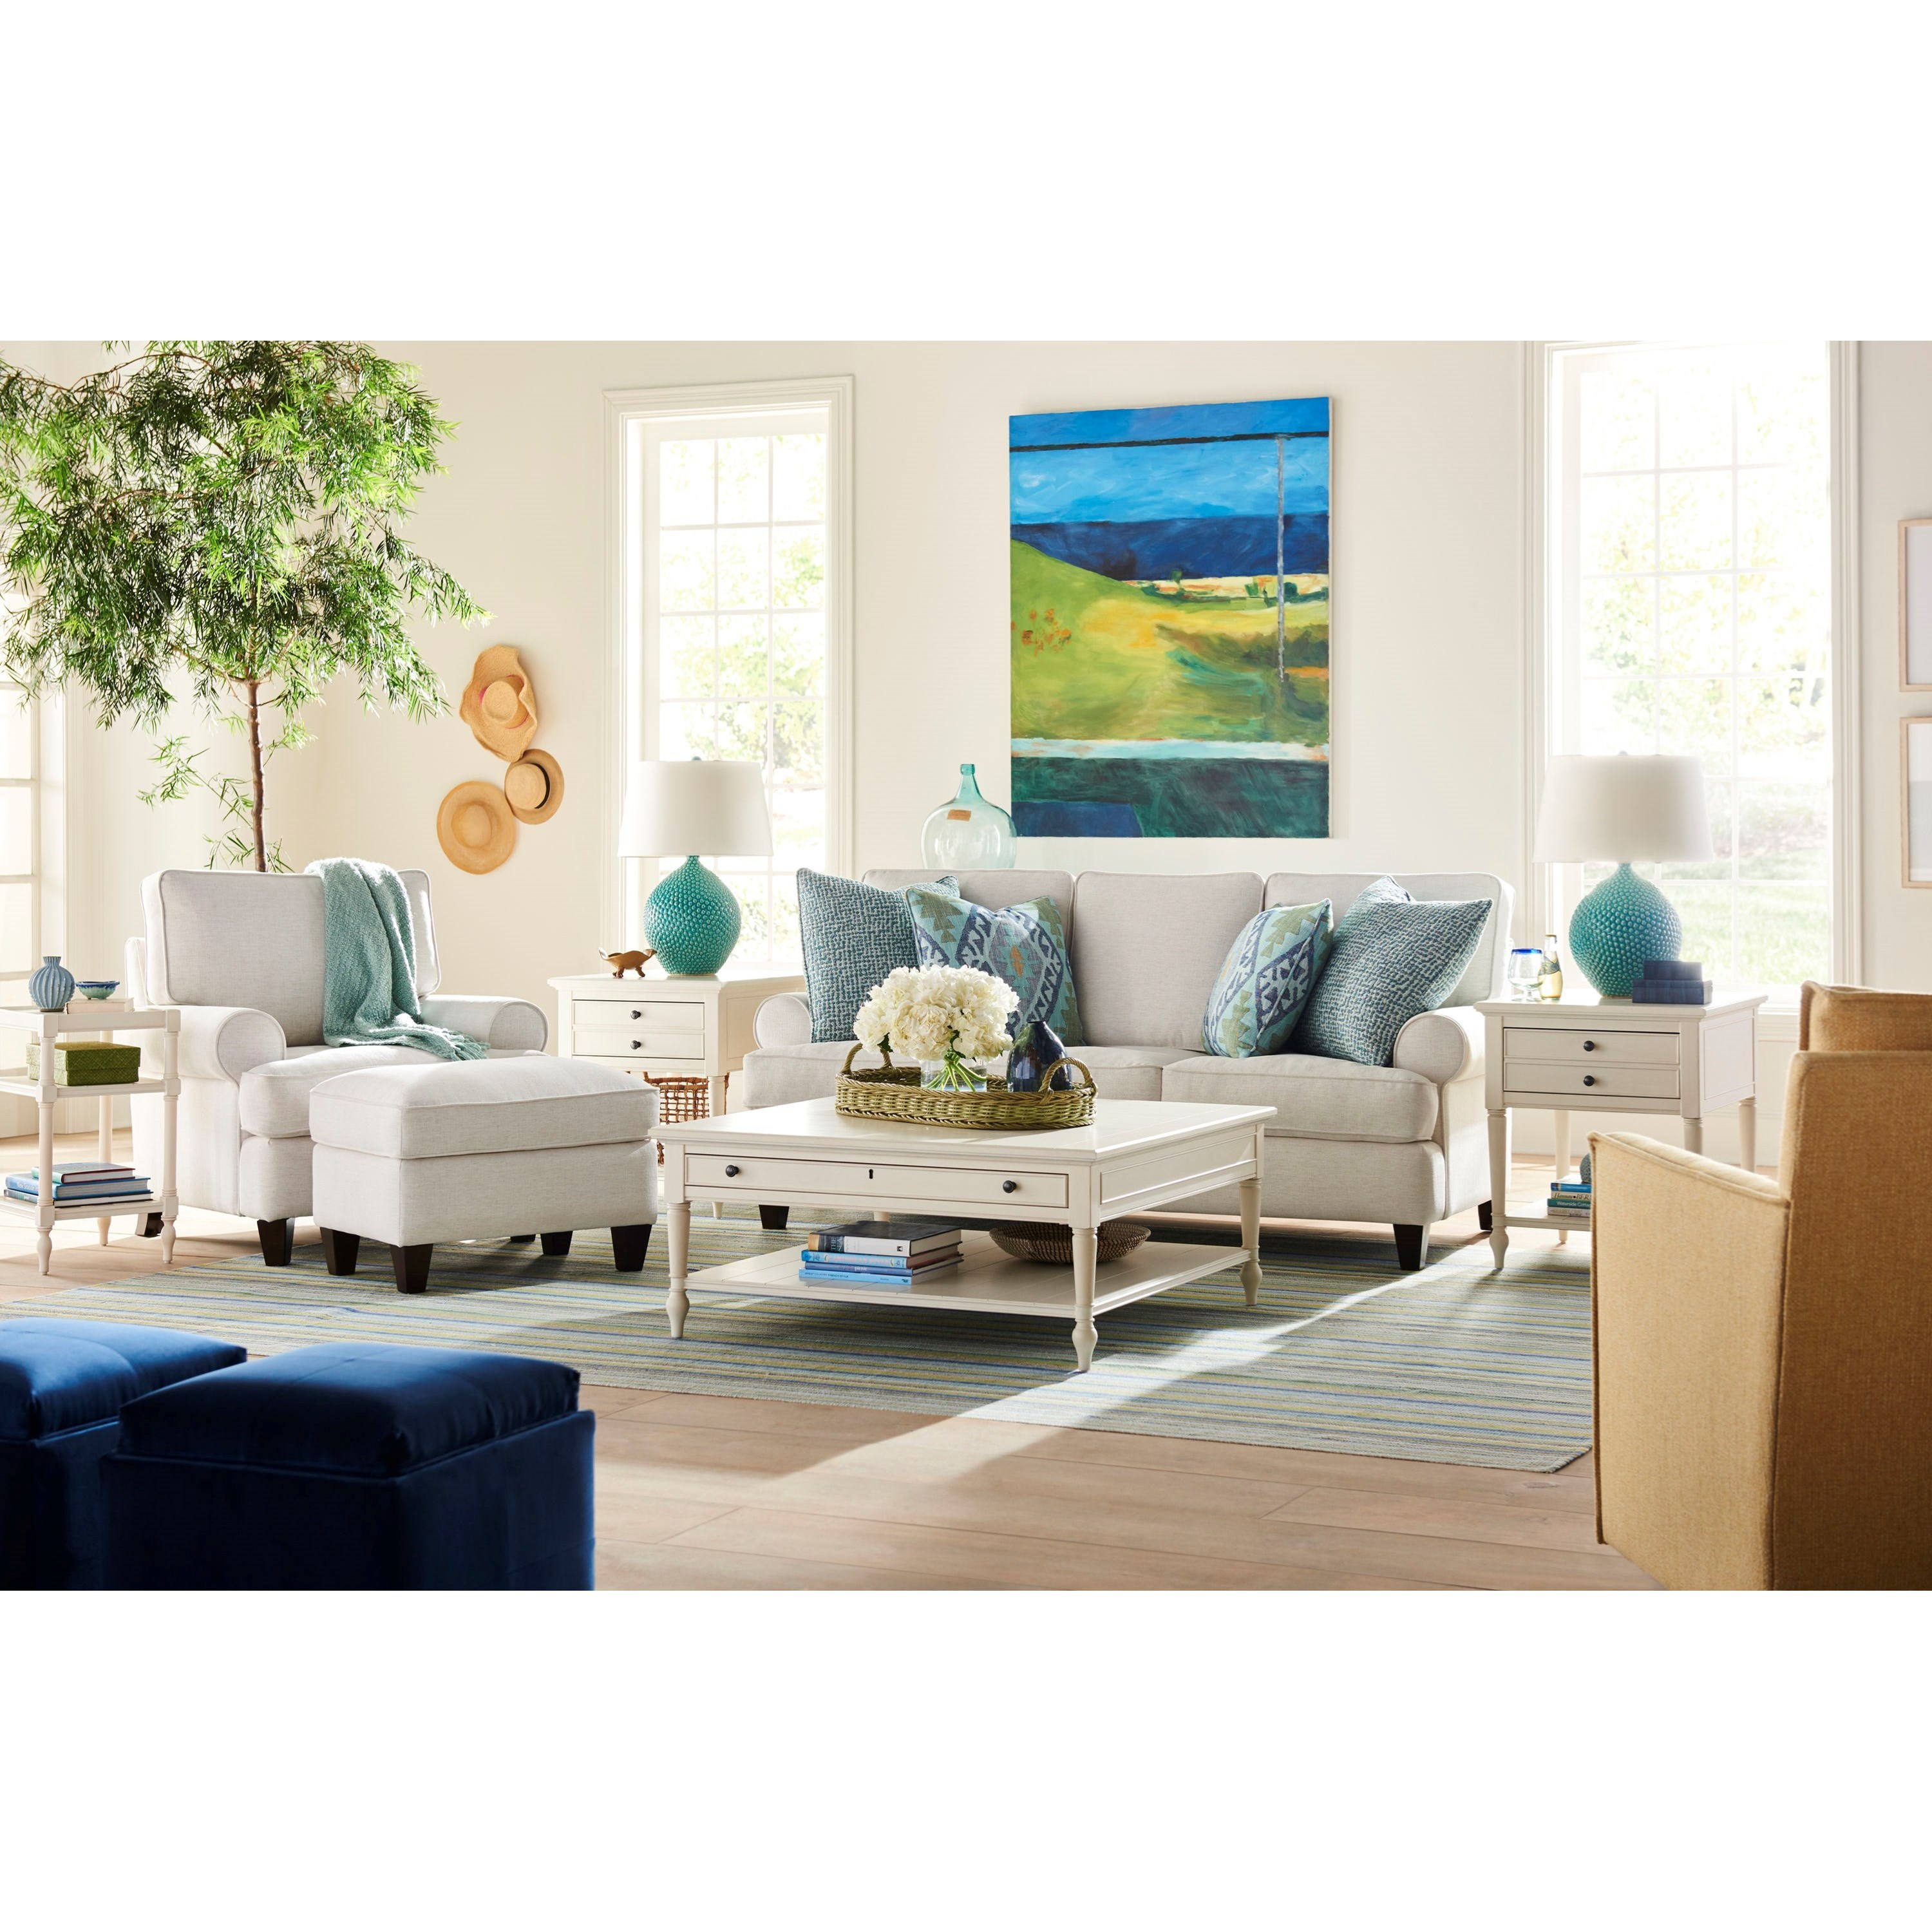 Blakely Living Room Group by Universal at Baer's Furniture